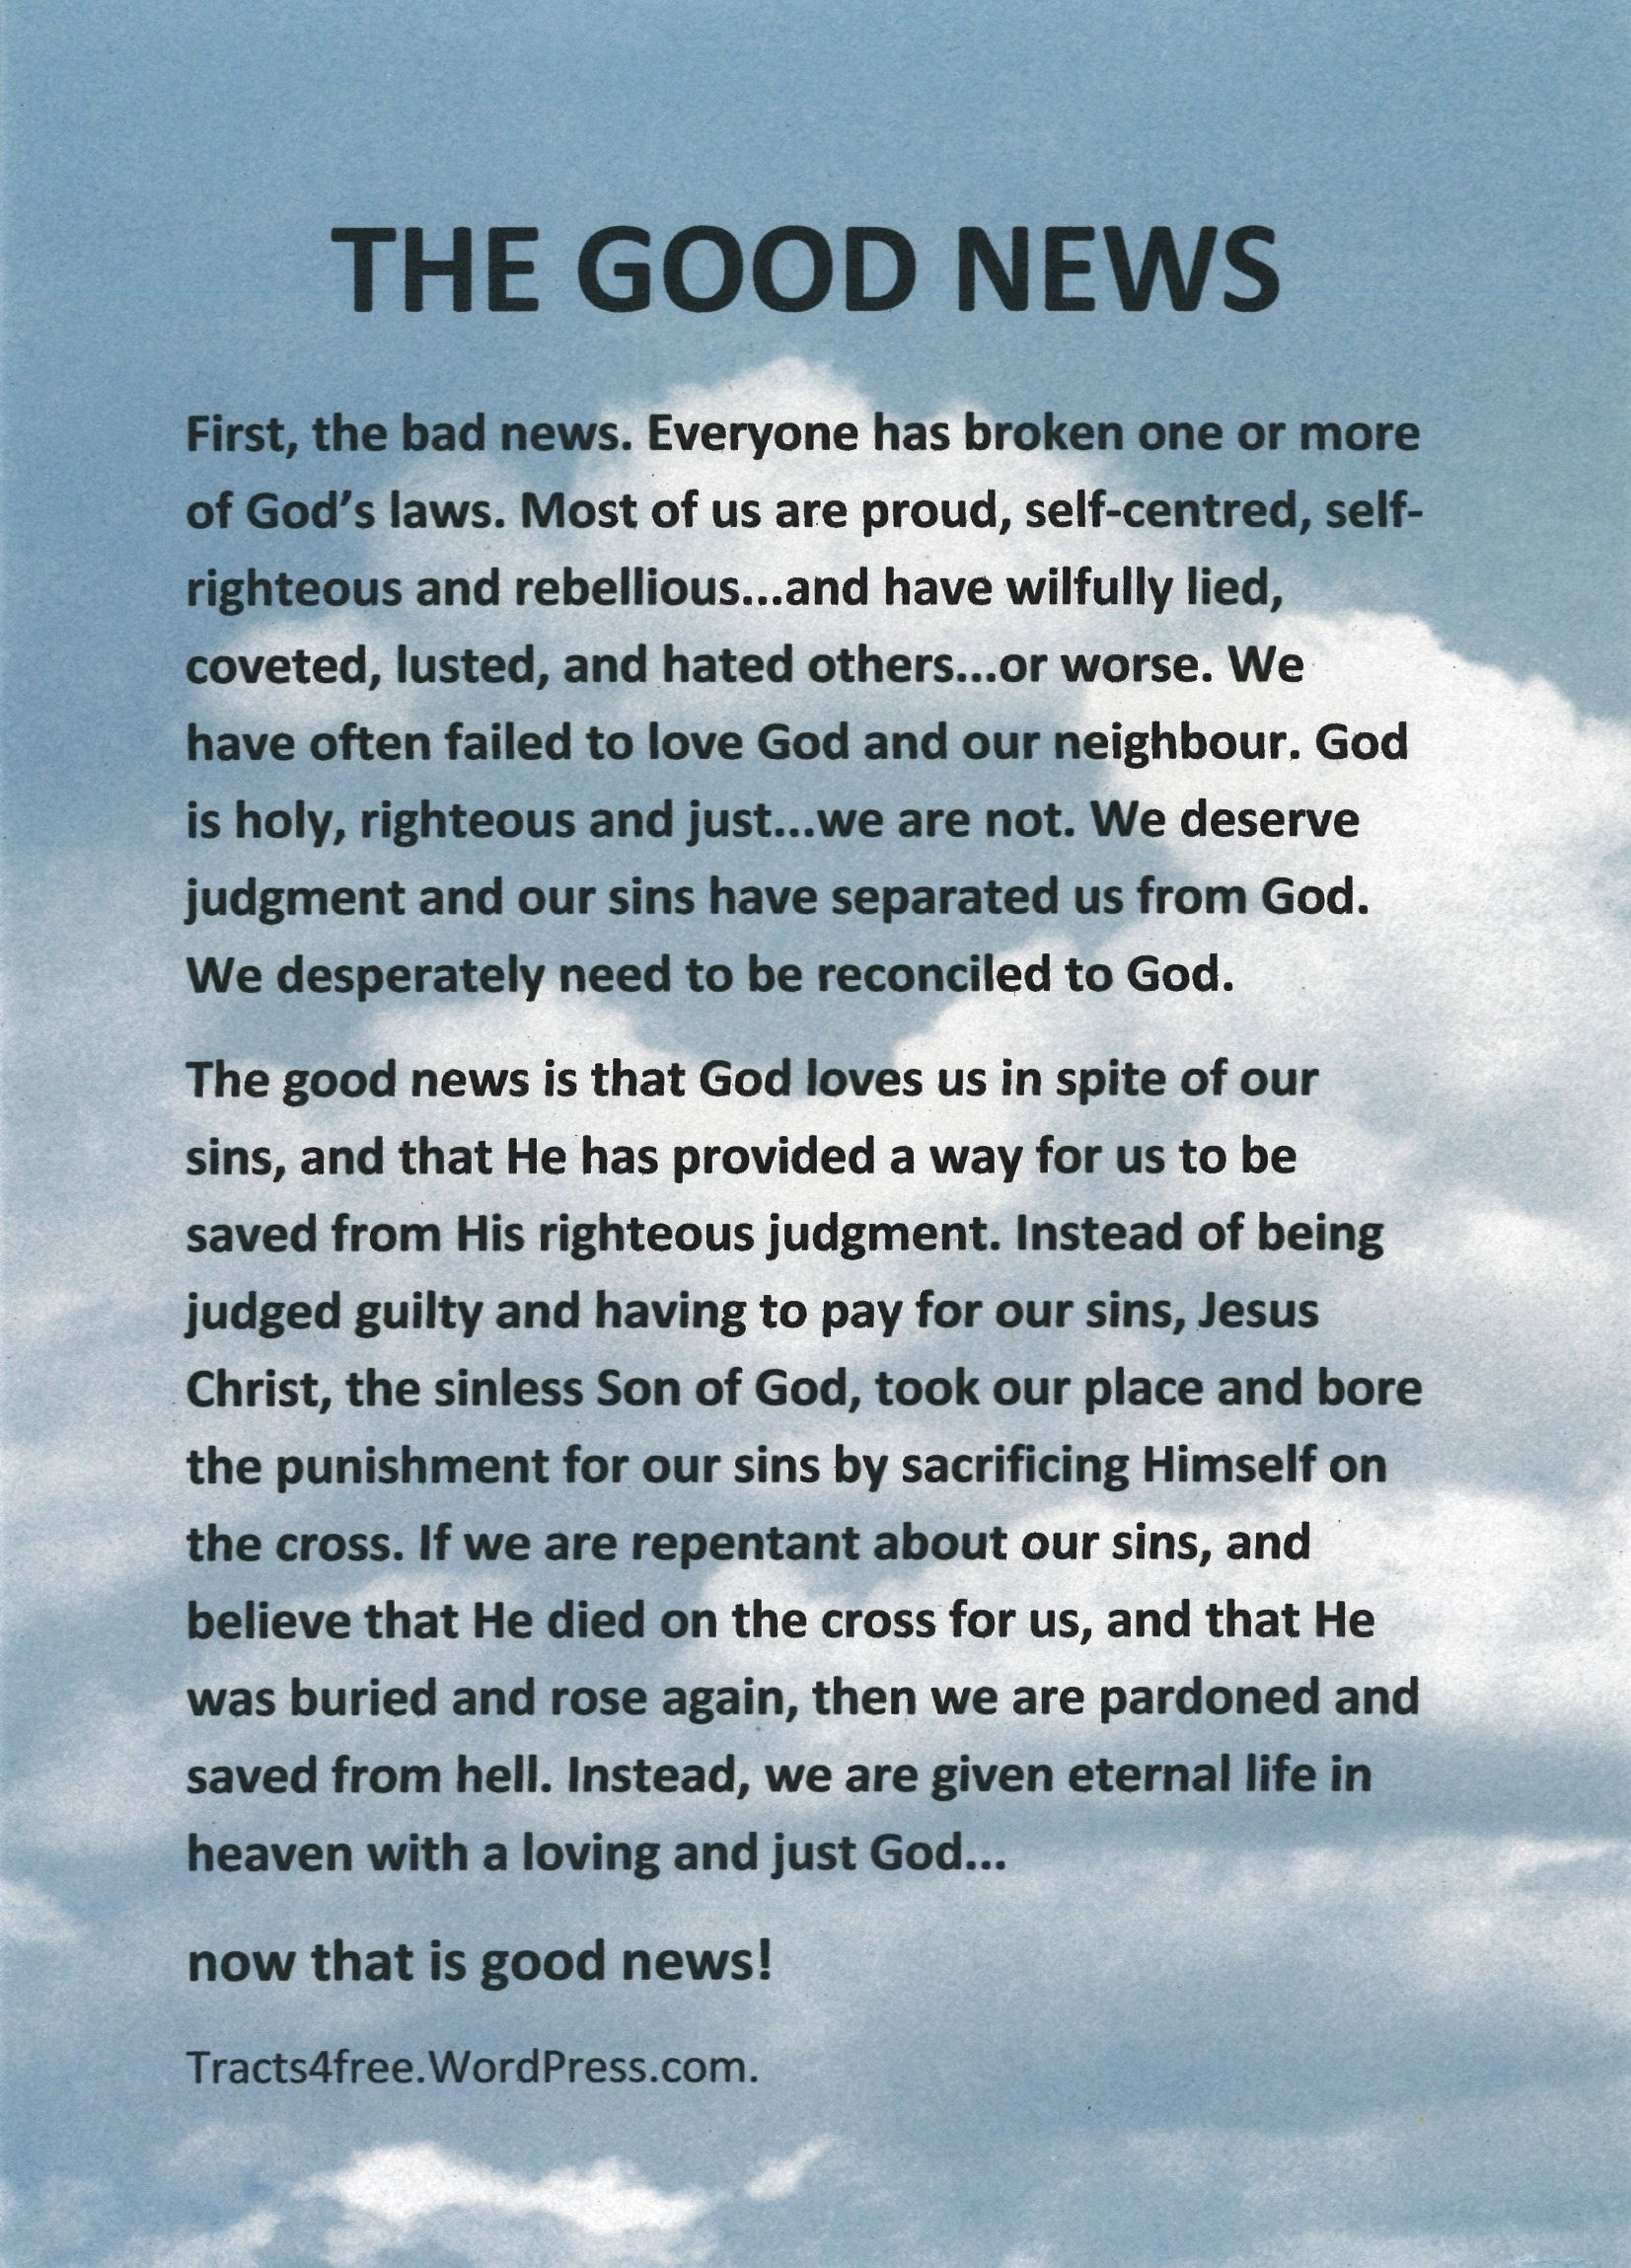 Salvation Tracts Printable - Google Search   The Good News   Good - Free Bible Tracts Printable